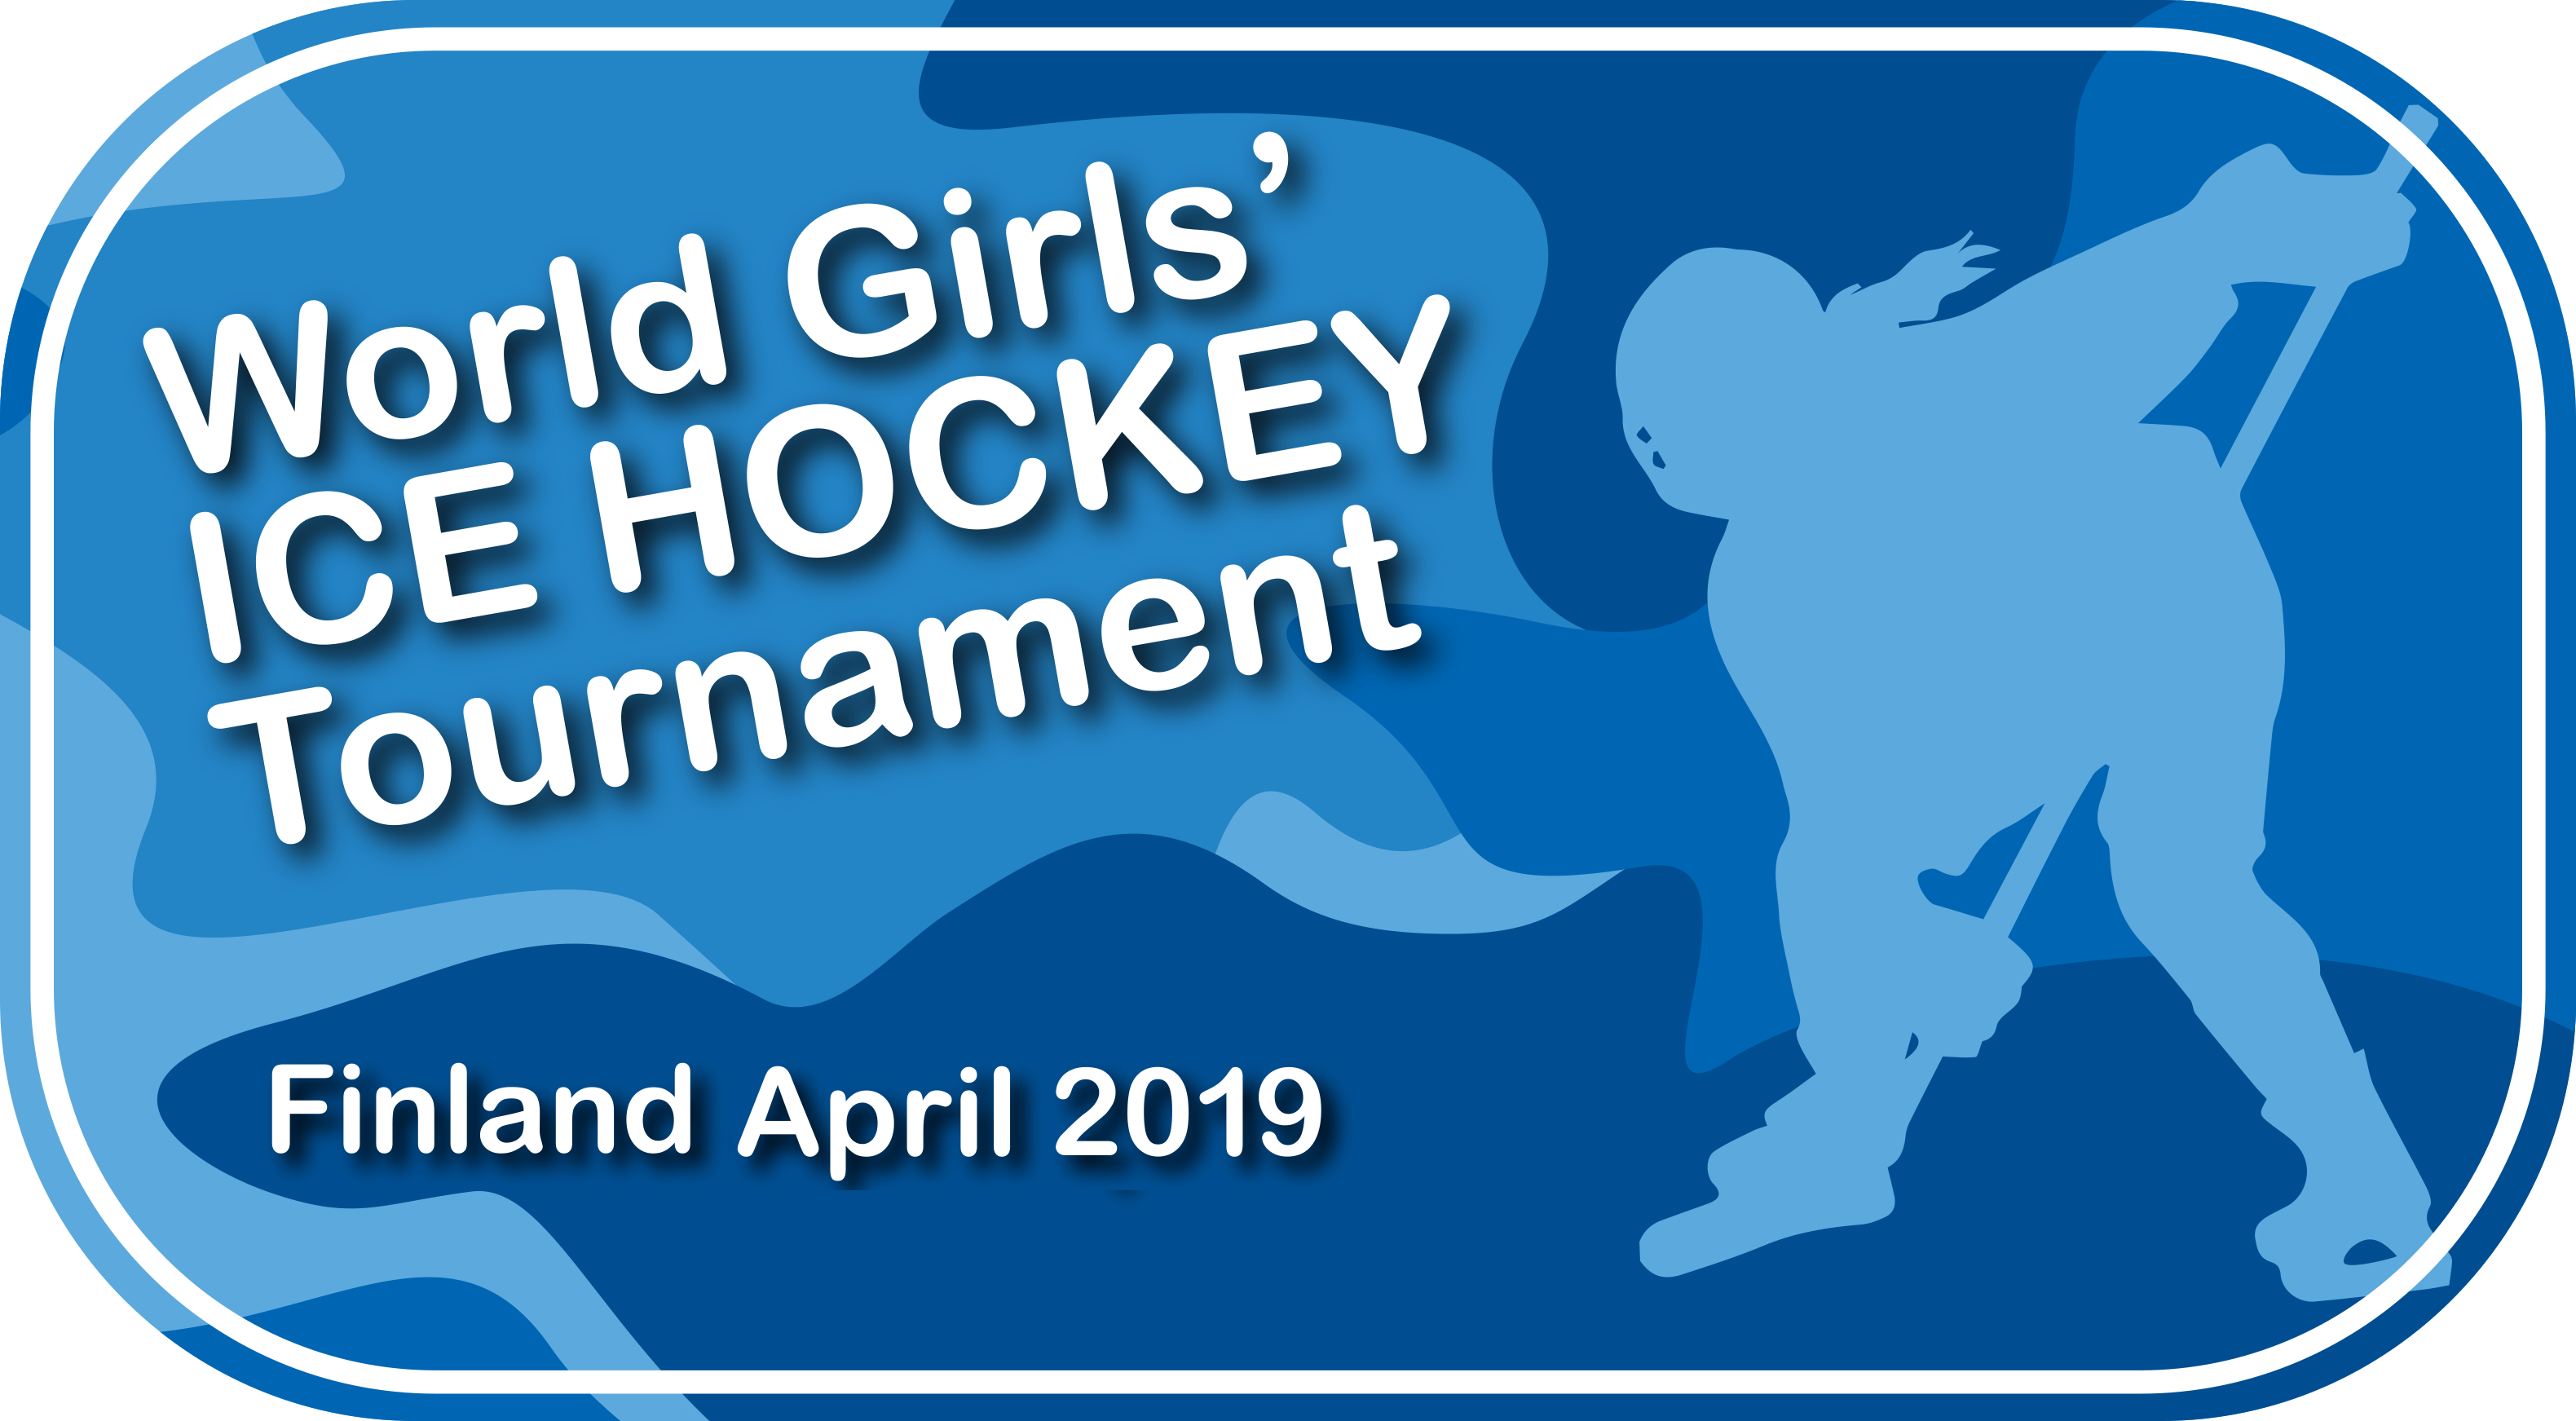 Start World Girls Hockey Tournament Cuponline